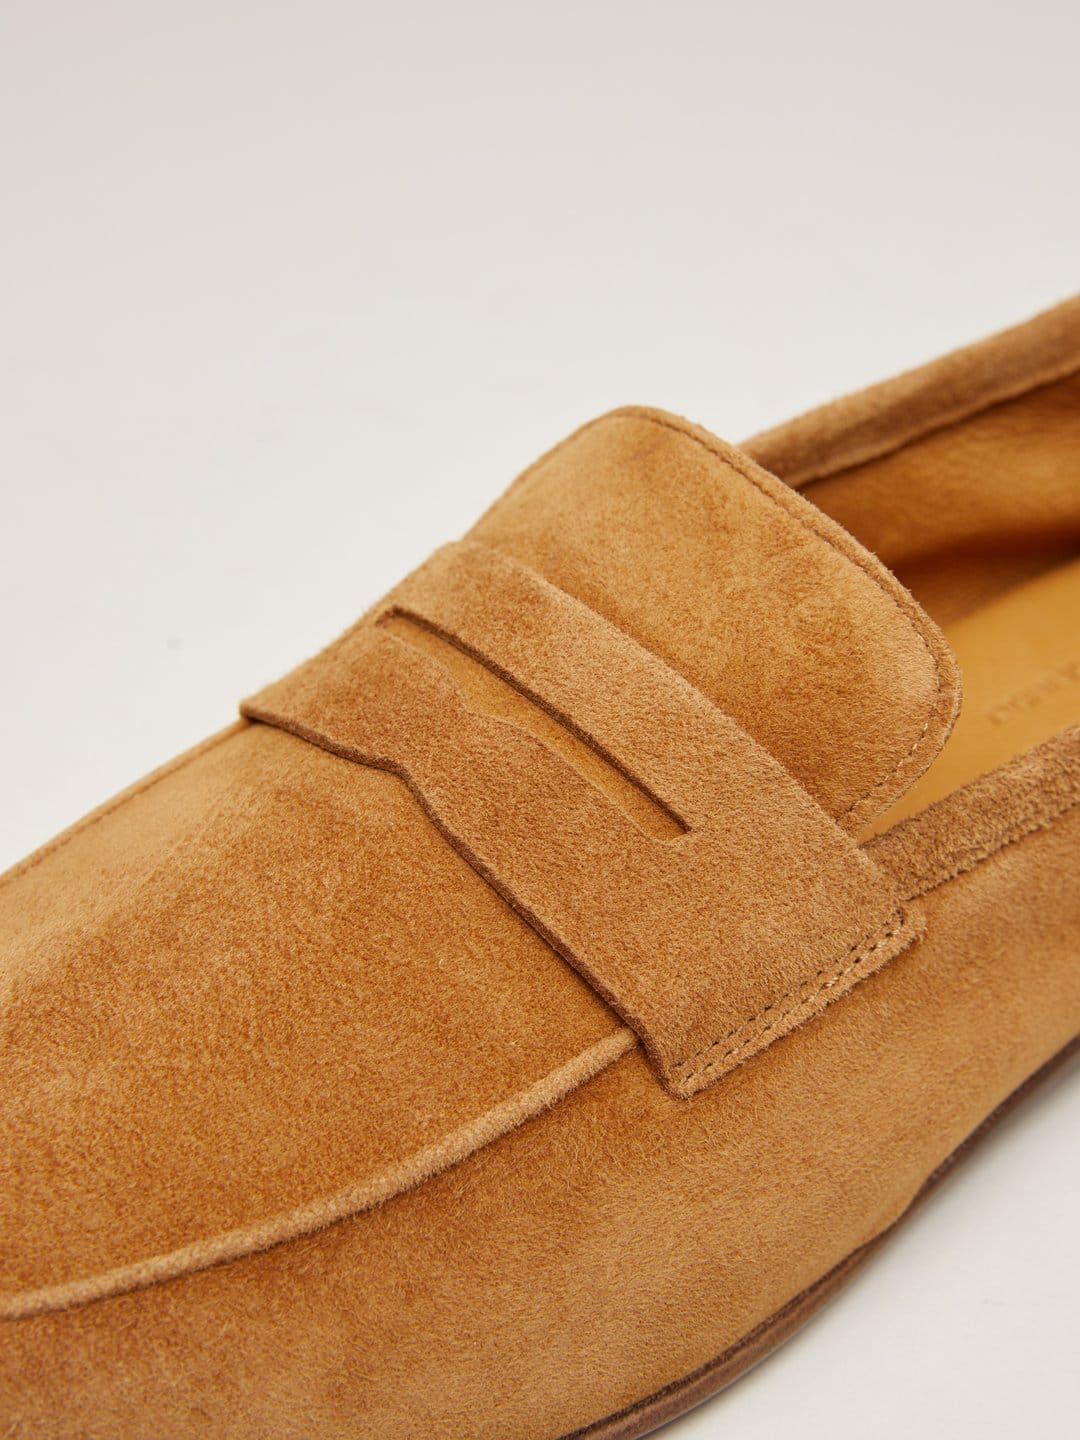 Bagagerie mocassins Sacca